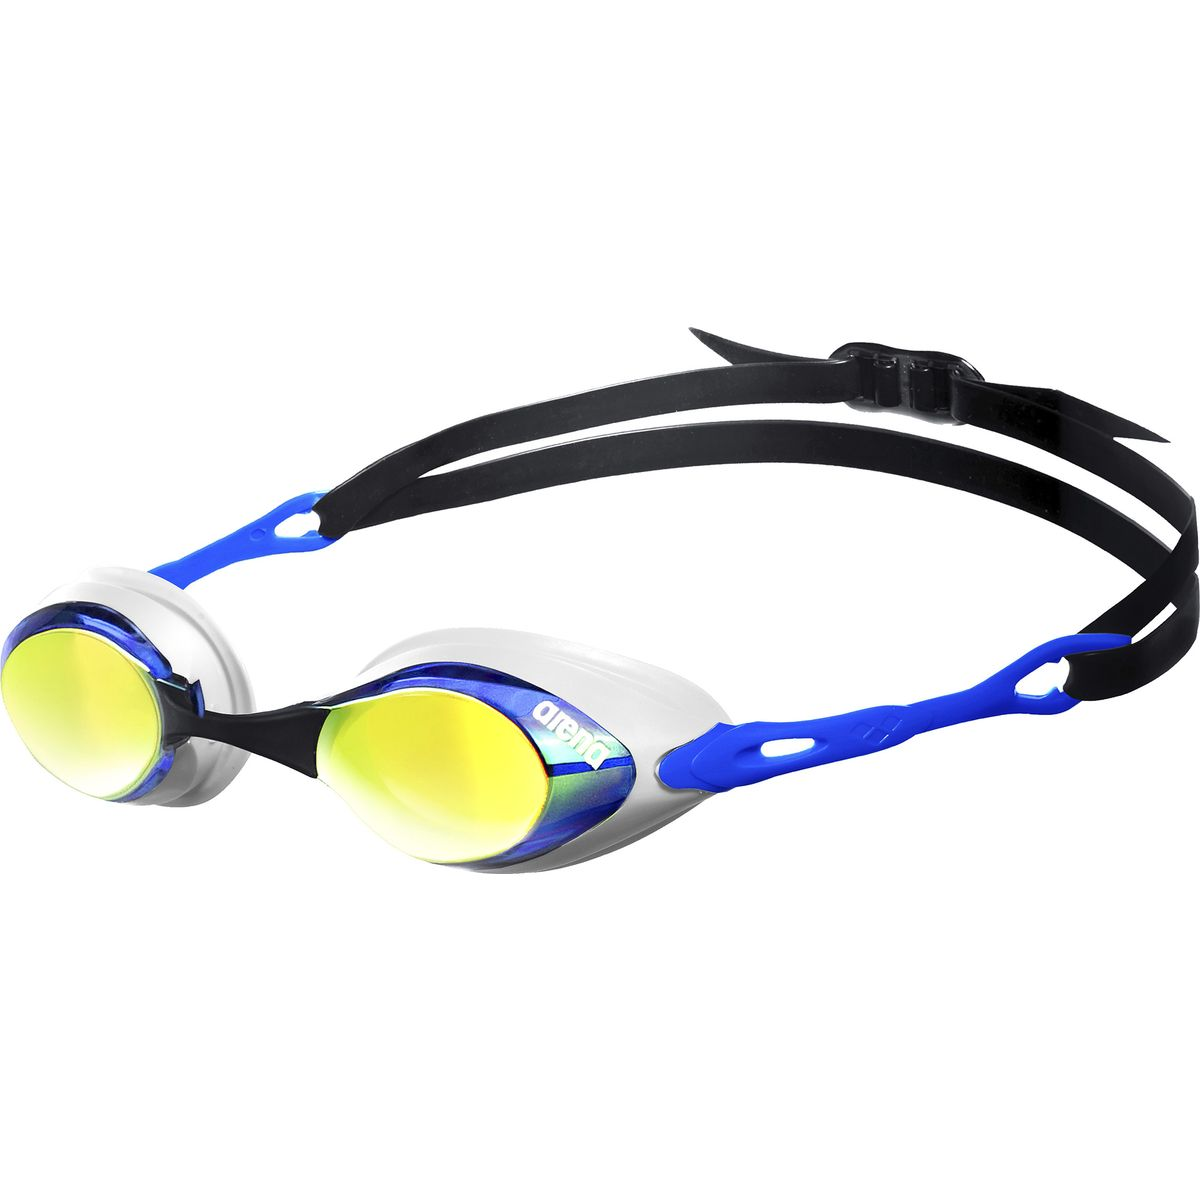 Cobra Mirror swimming goggles